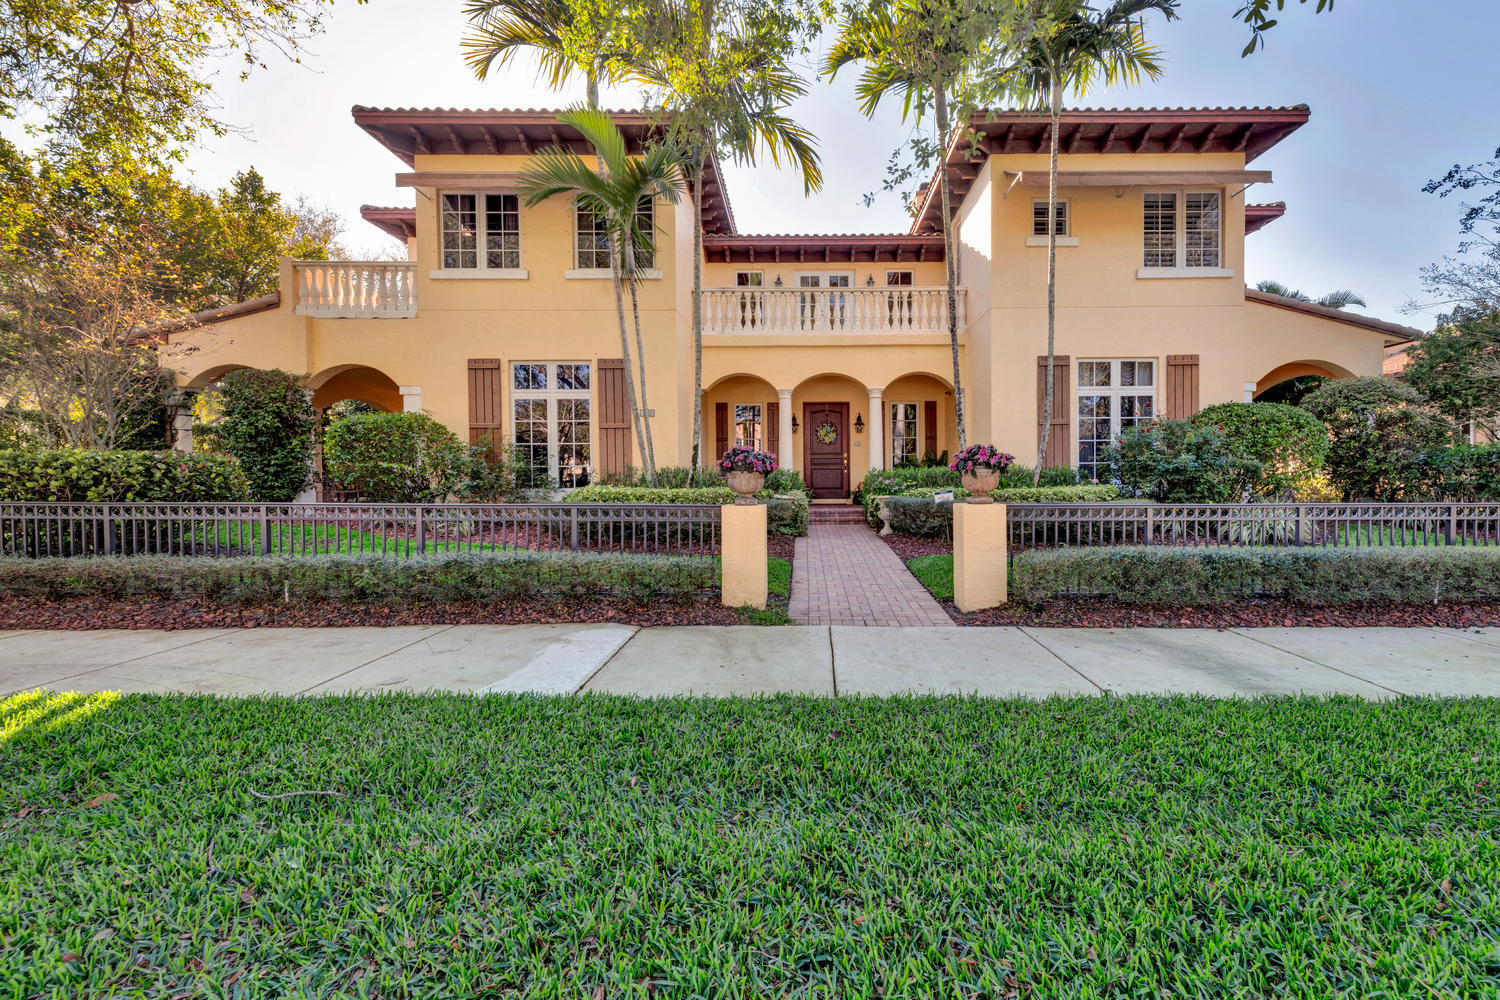 New Home for sale at 118 Valencia Boulevard in Jupiter